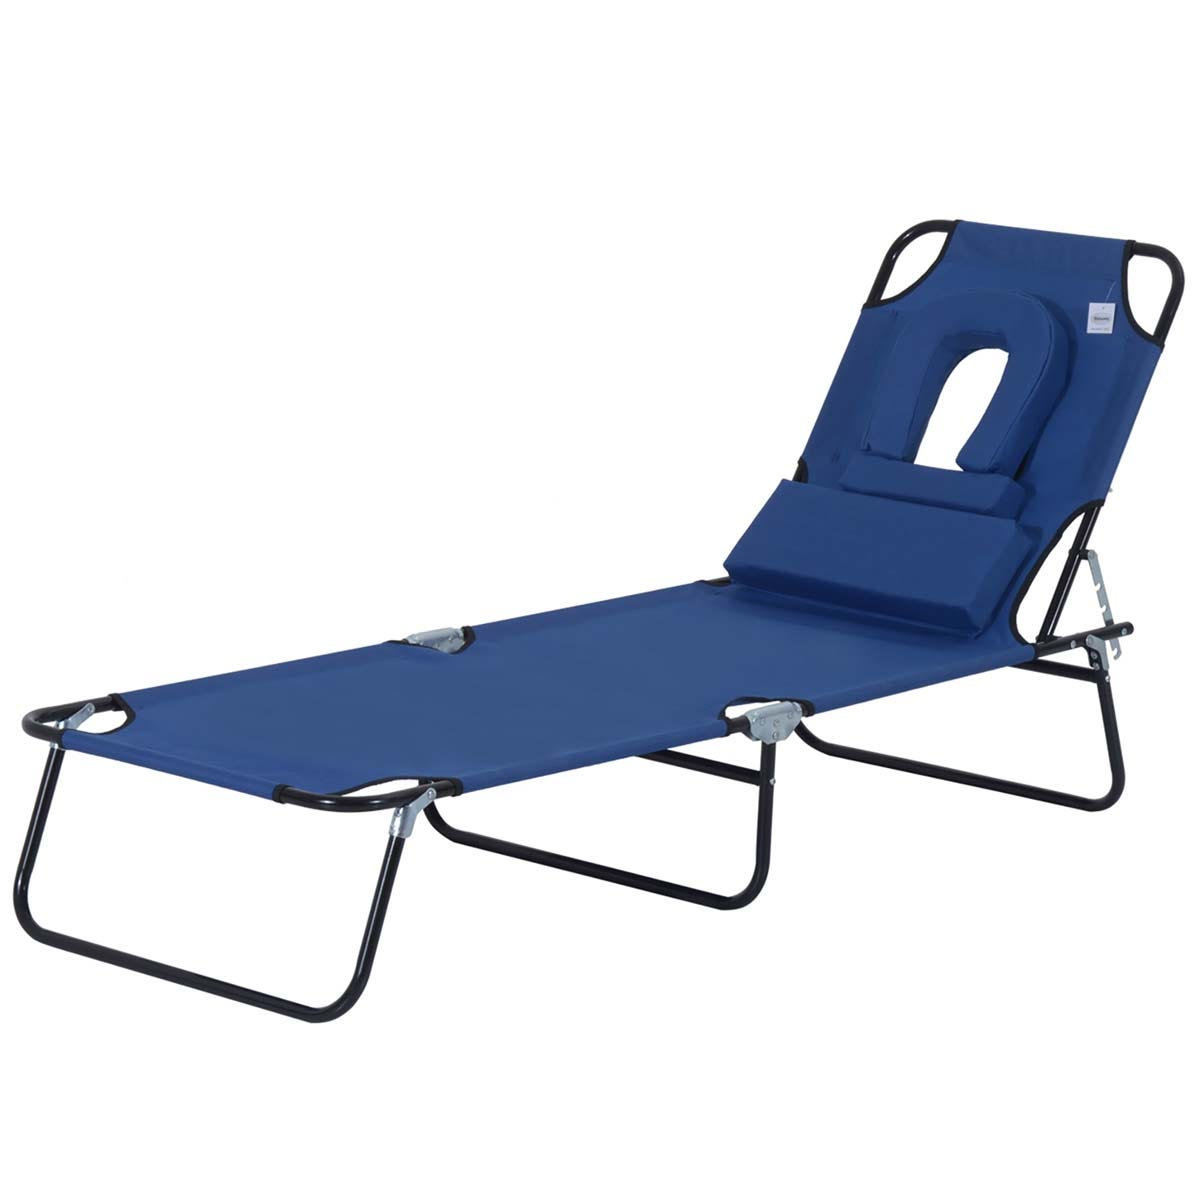 Outsunny Premium Folding Sun Lounger with Reading Hole - Blue